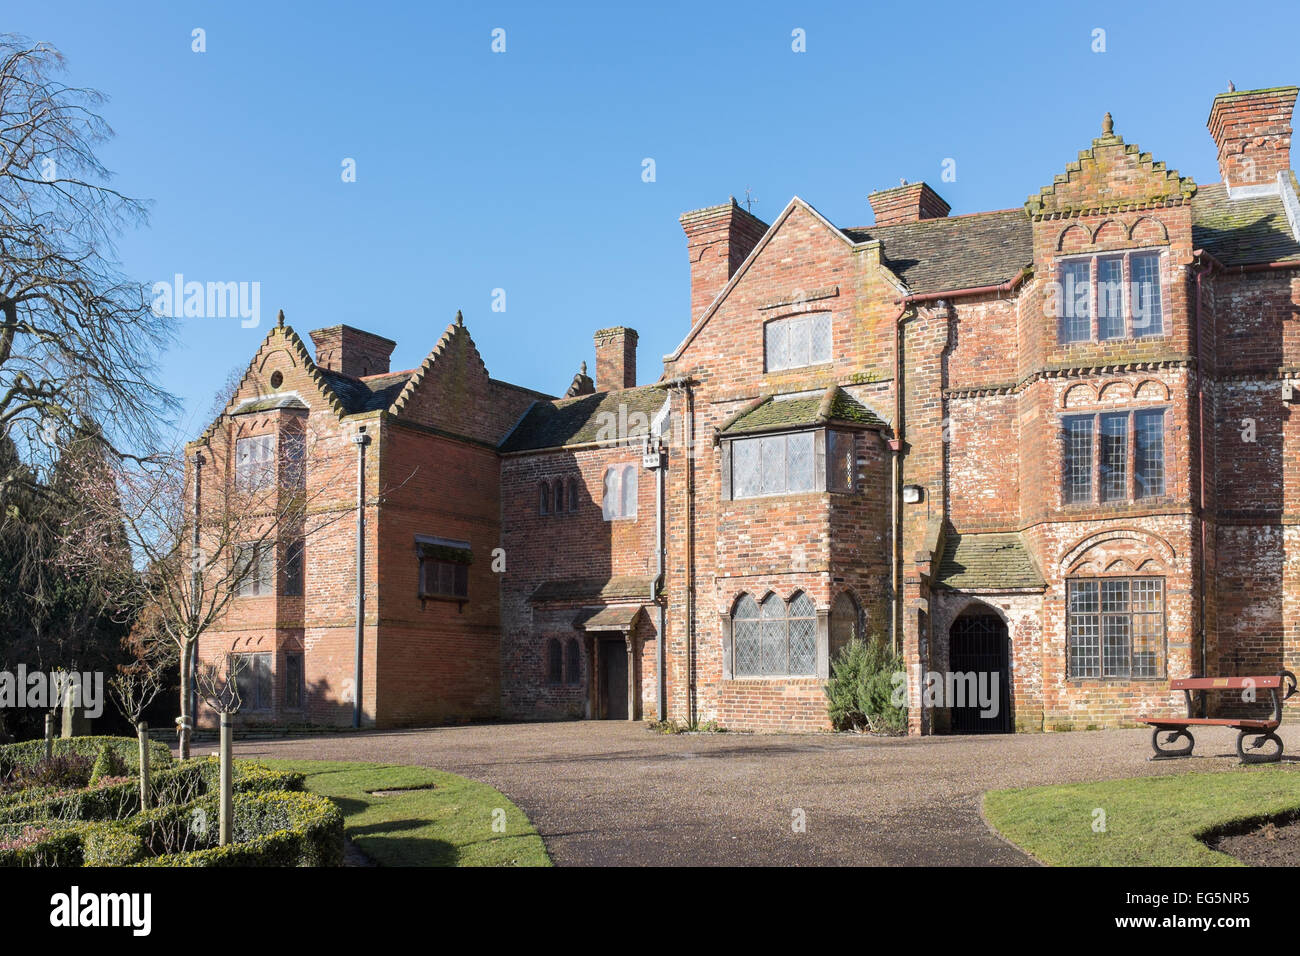 Haden Hill House Museum And Old Hall In Rowley Regis West Midlands